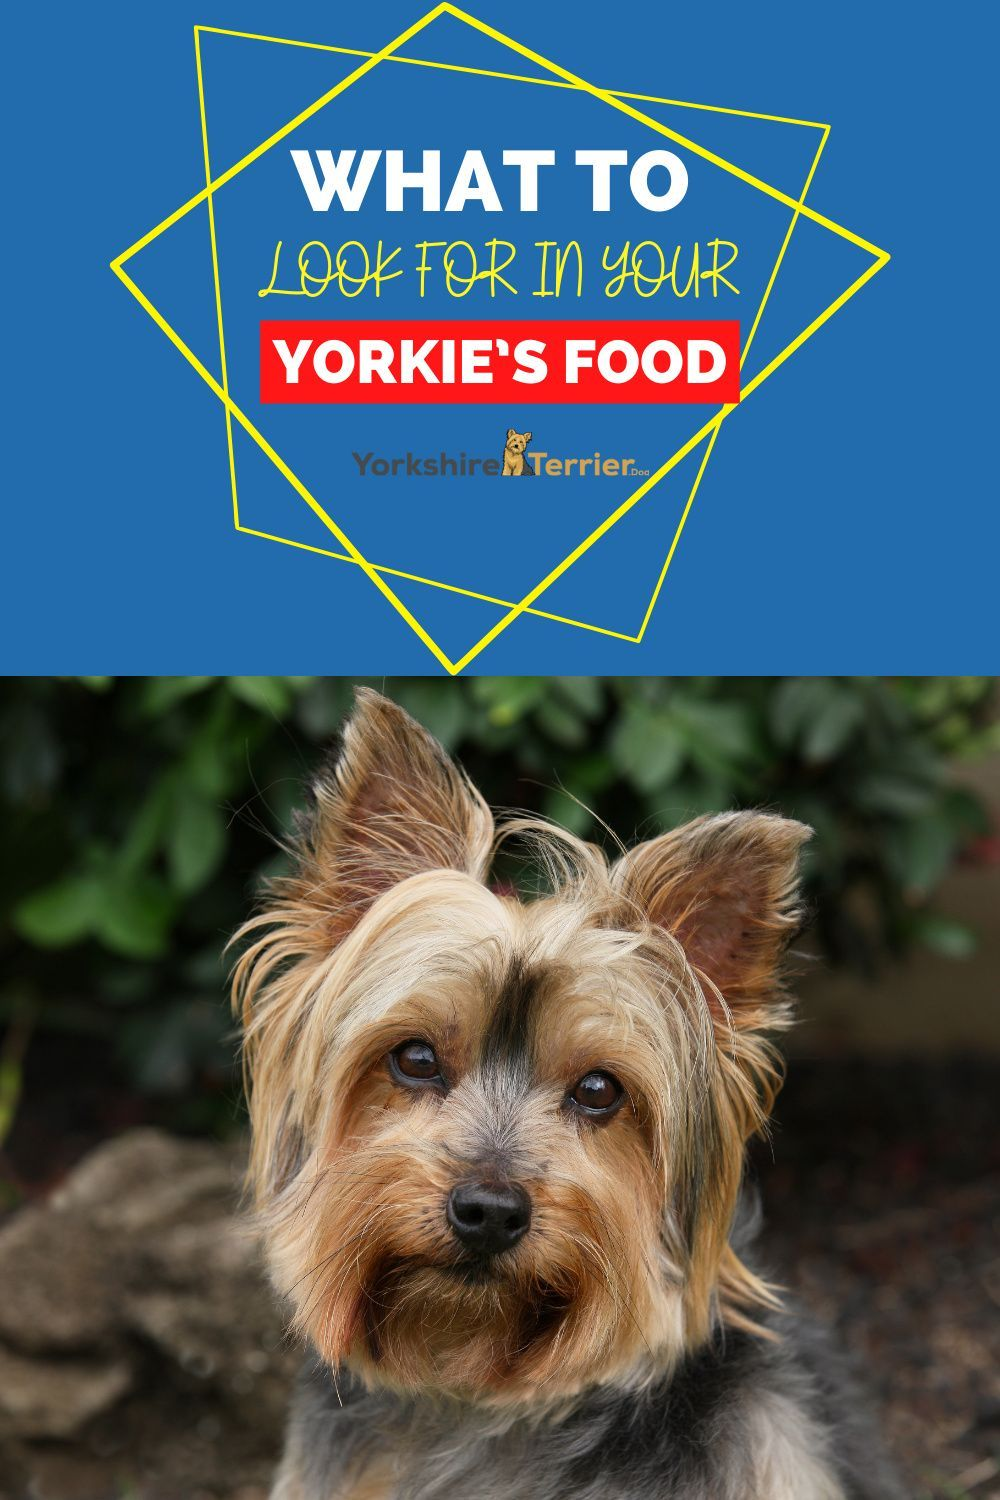 What To Look For In Your Yorkie S Food In 2020 Yorkie Dog Food Recipes Best Dog Food